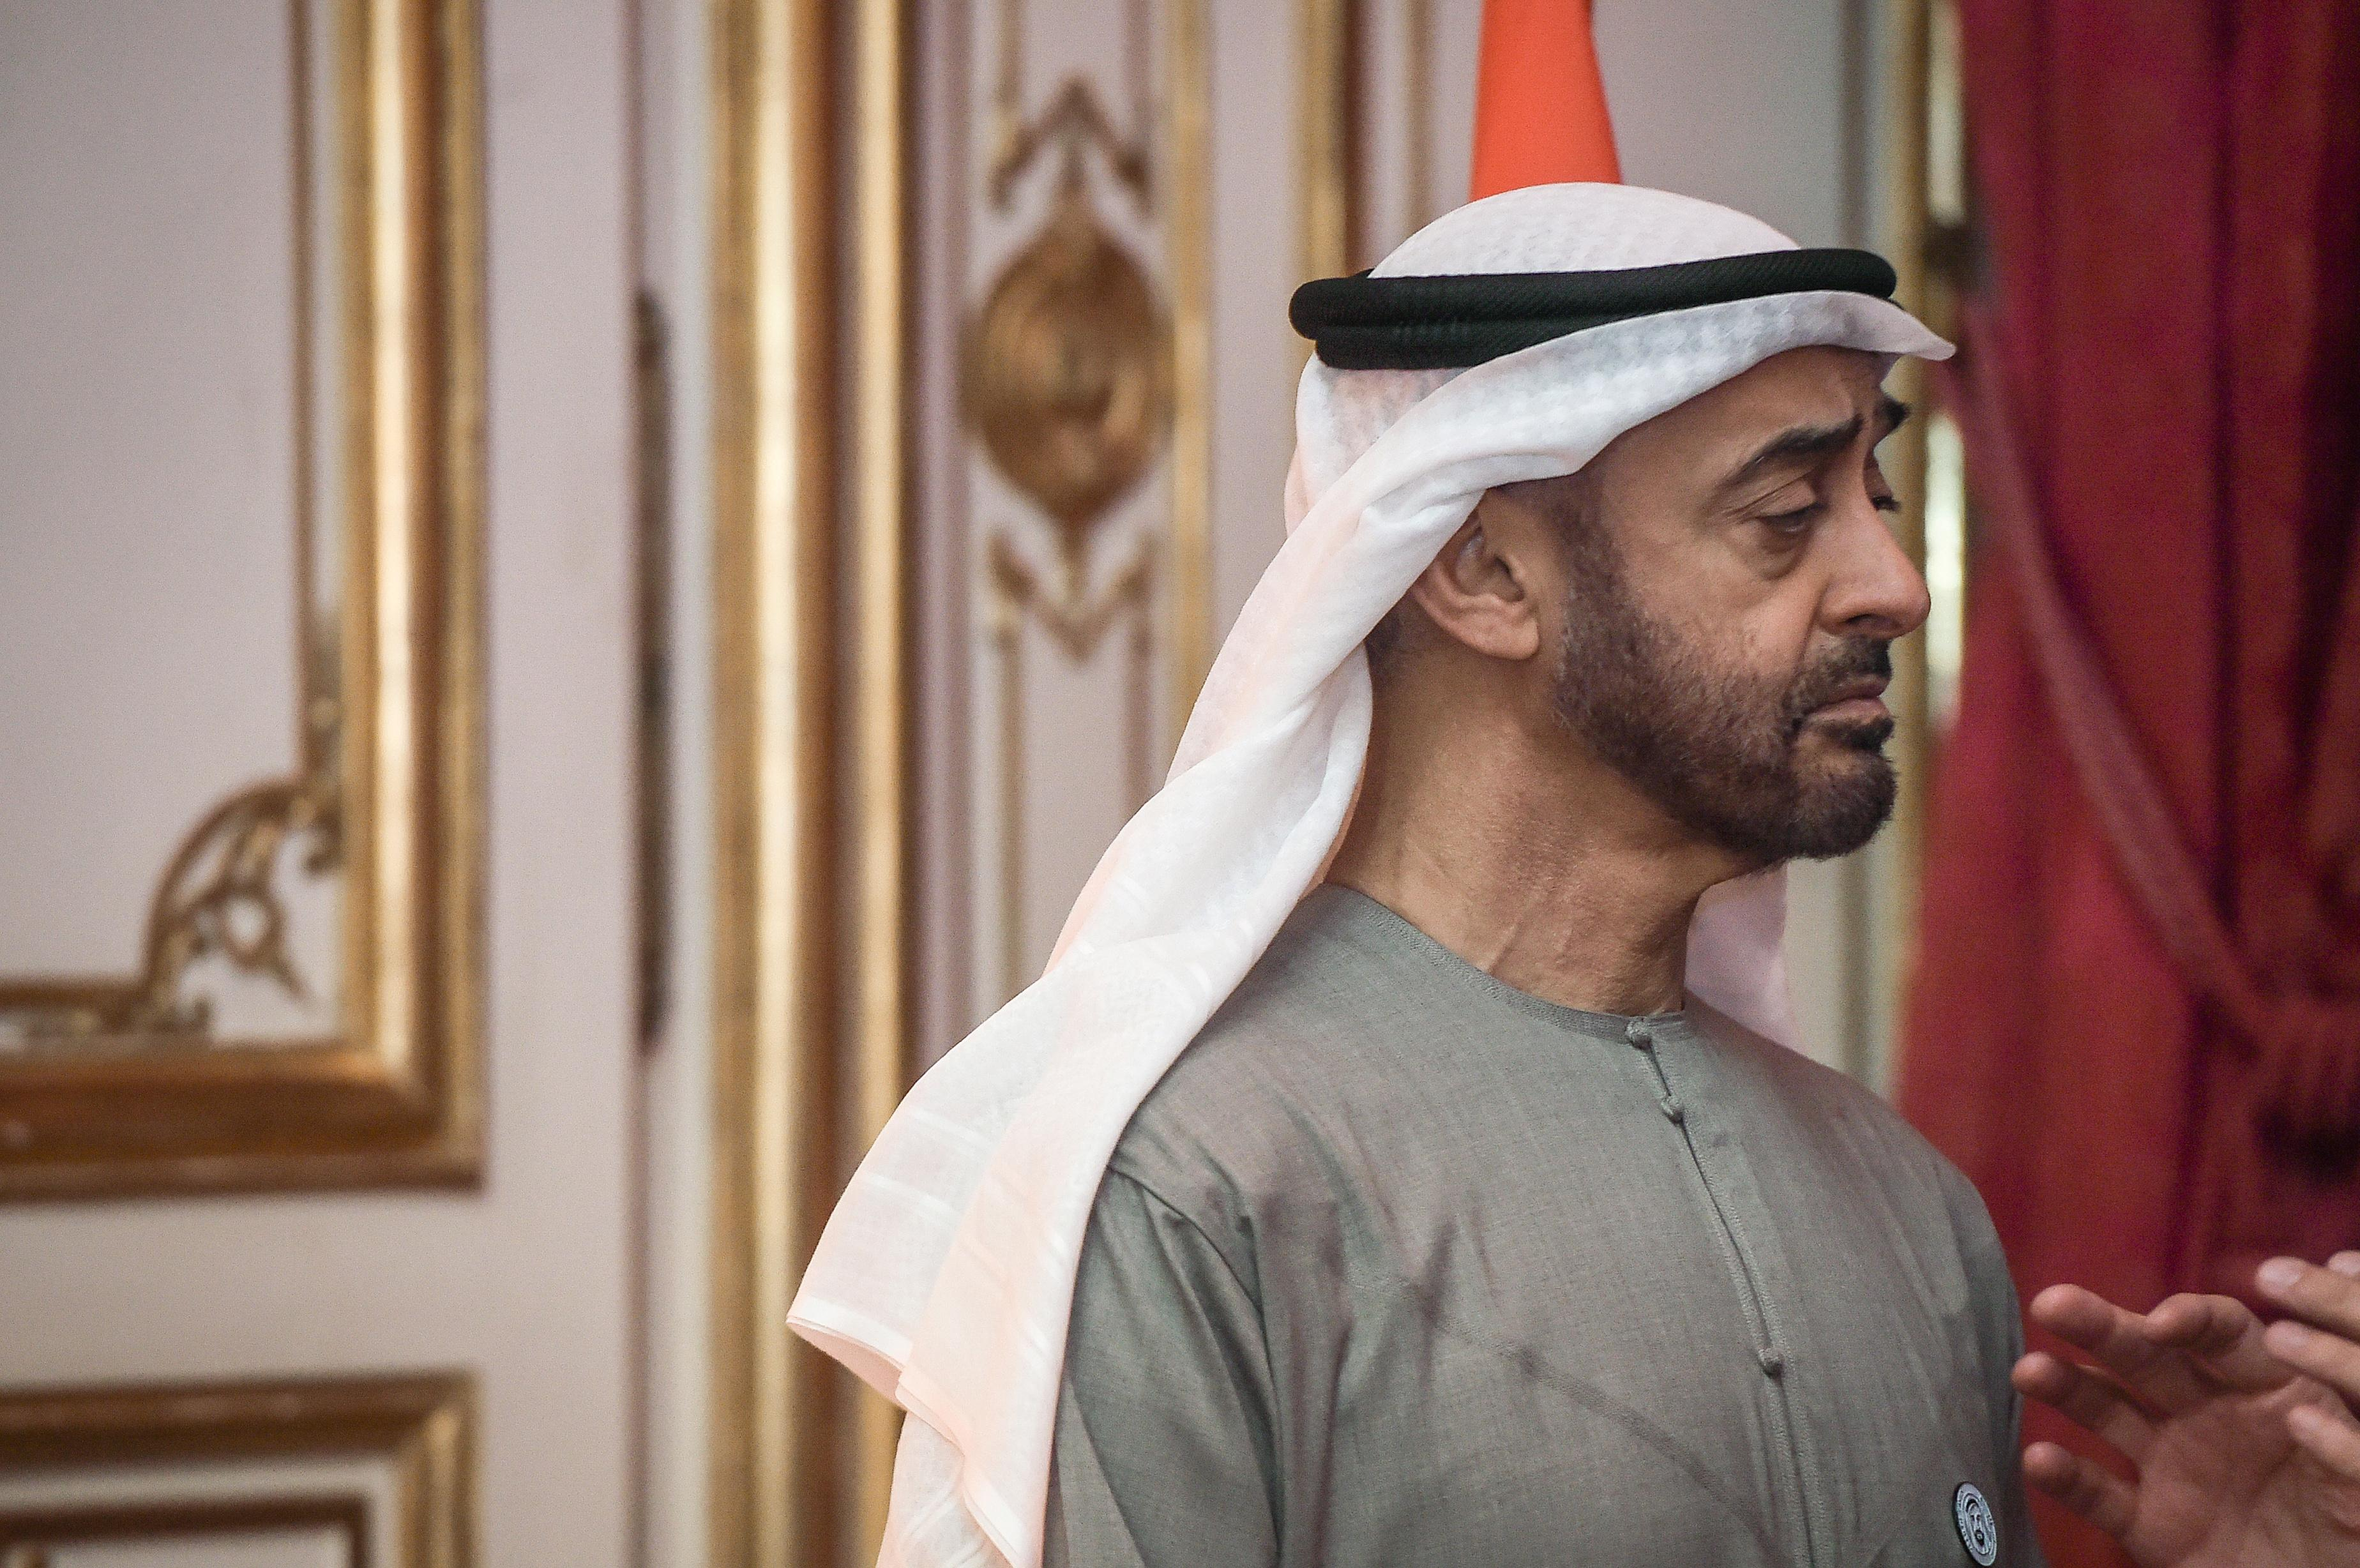 Abu Dhabi crown prince discusses defence with UK official - Twitter